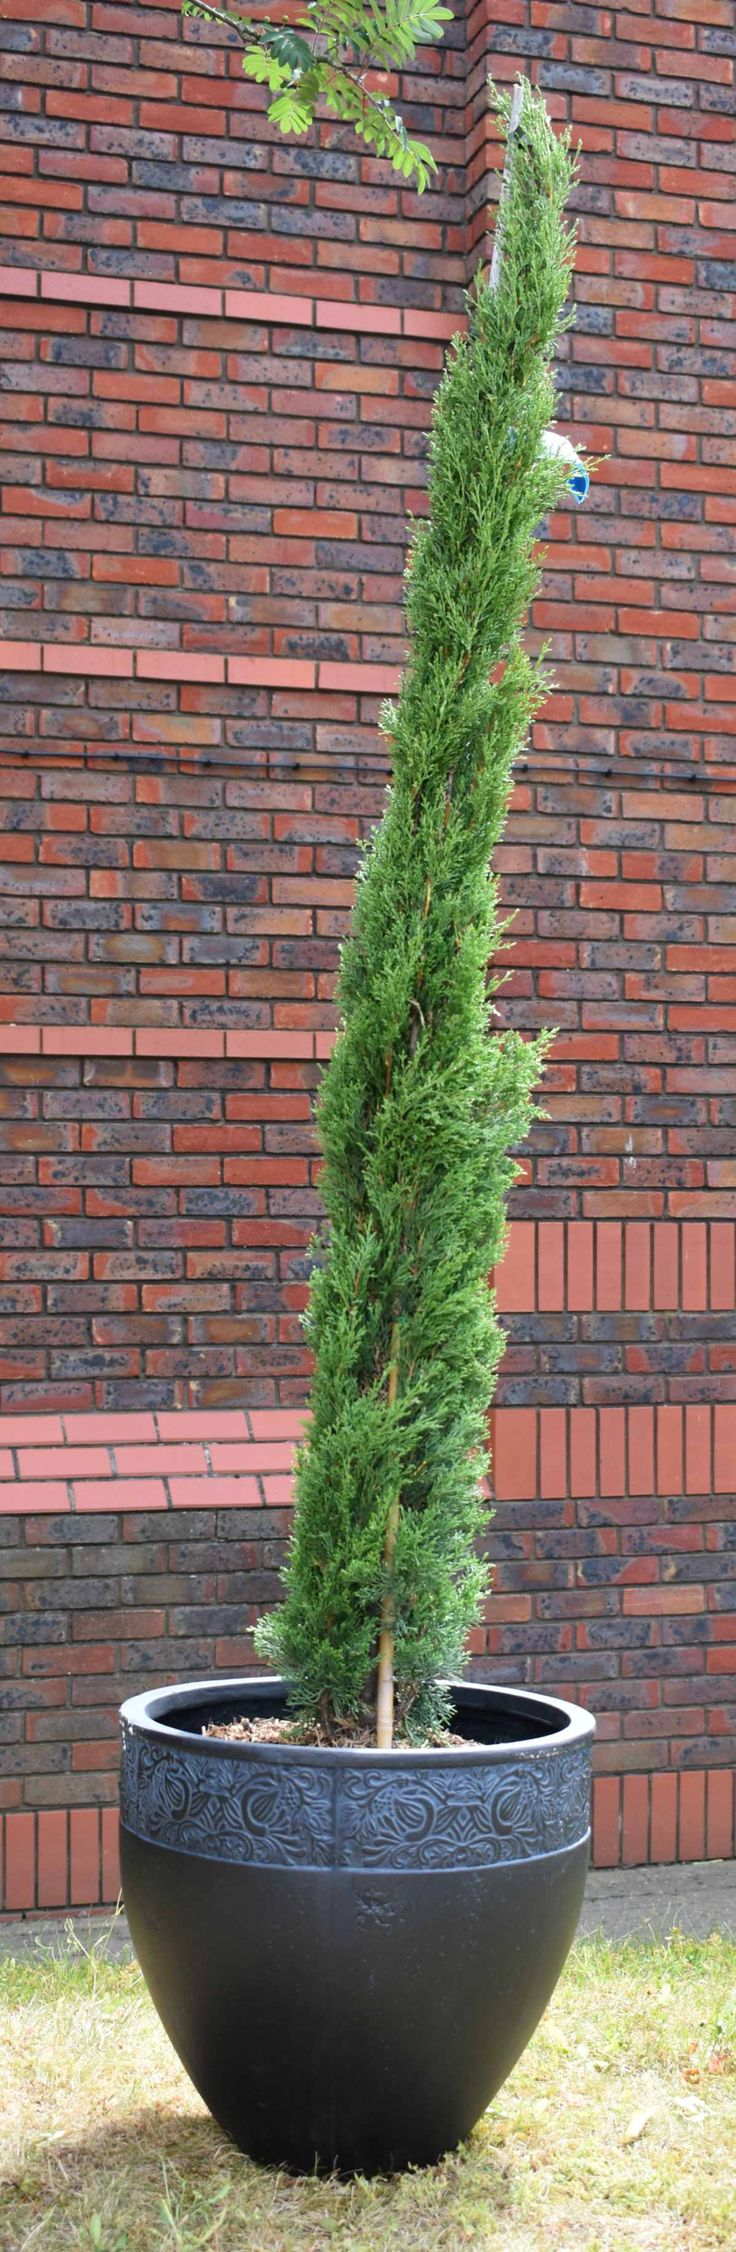 Italian Cypress 150-175cm 'Cupressus Sempervirens Totem' 18L Pot Italian Cypress trees are perfect for framing doors and gates, effortlessly adding a touch of the Mediterranean to your garden. Extremely easy to manage these stunning trees will maintain a pristine pencil